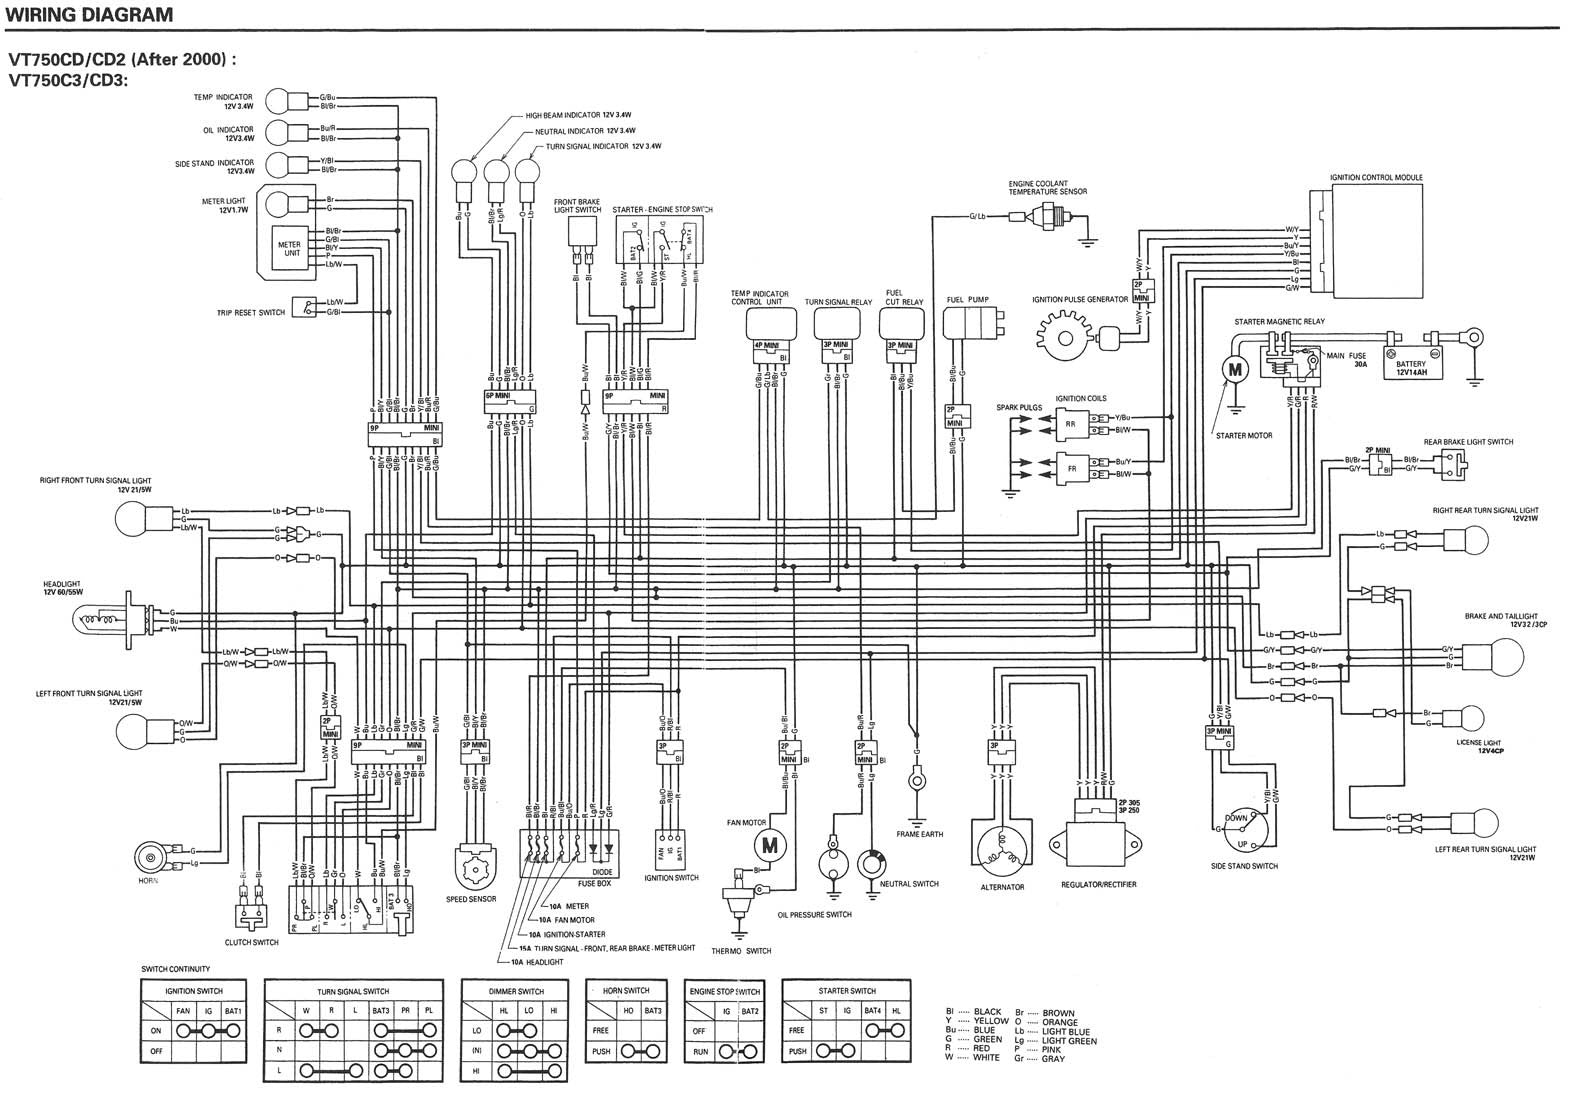 1993 honda shadow 600 wiring diagram just wiring data rh ag skiphire co uk